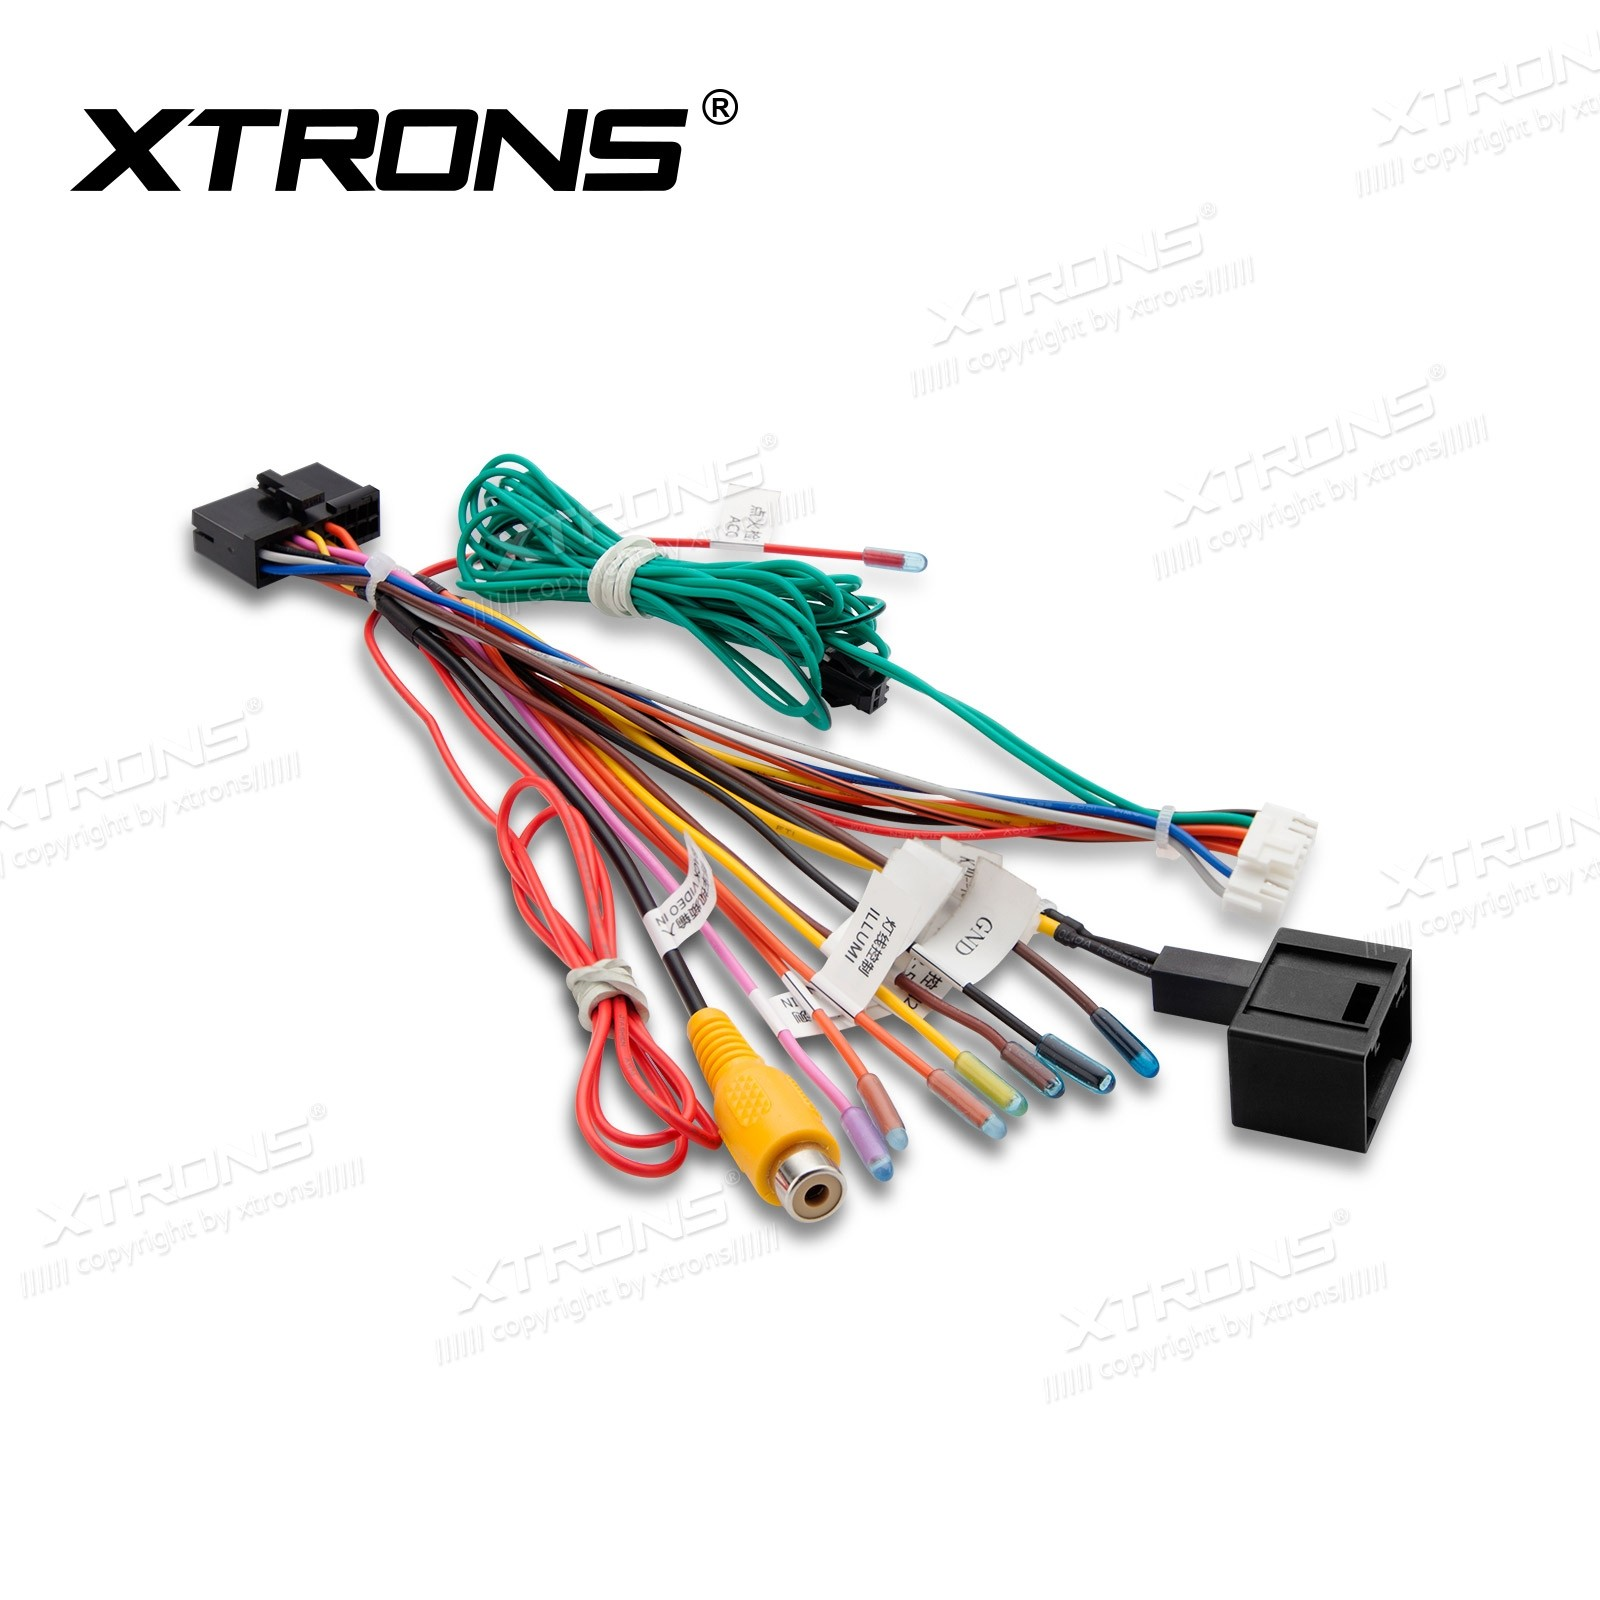 Iso Wiring Harness For Xtrons Mercedes Cls Series